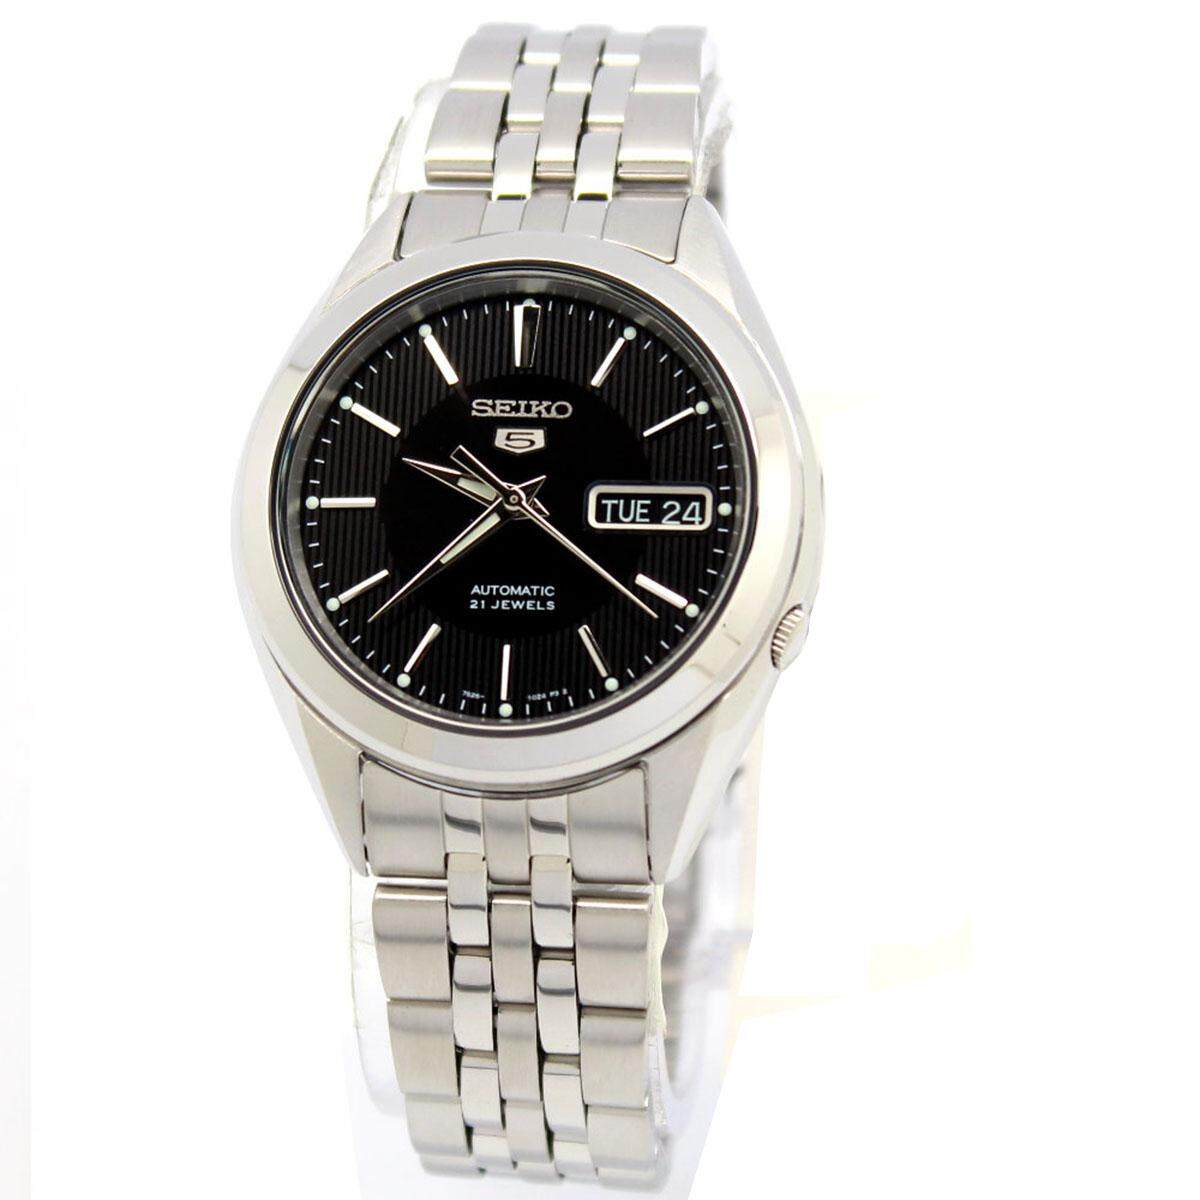 Seiko 5 Automatic Silver Stainless-Steel Case Stainless-Steel Bracelet Mens SNKL23K1